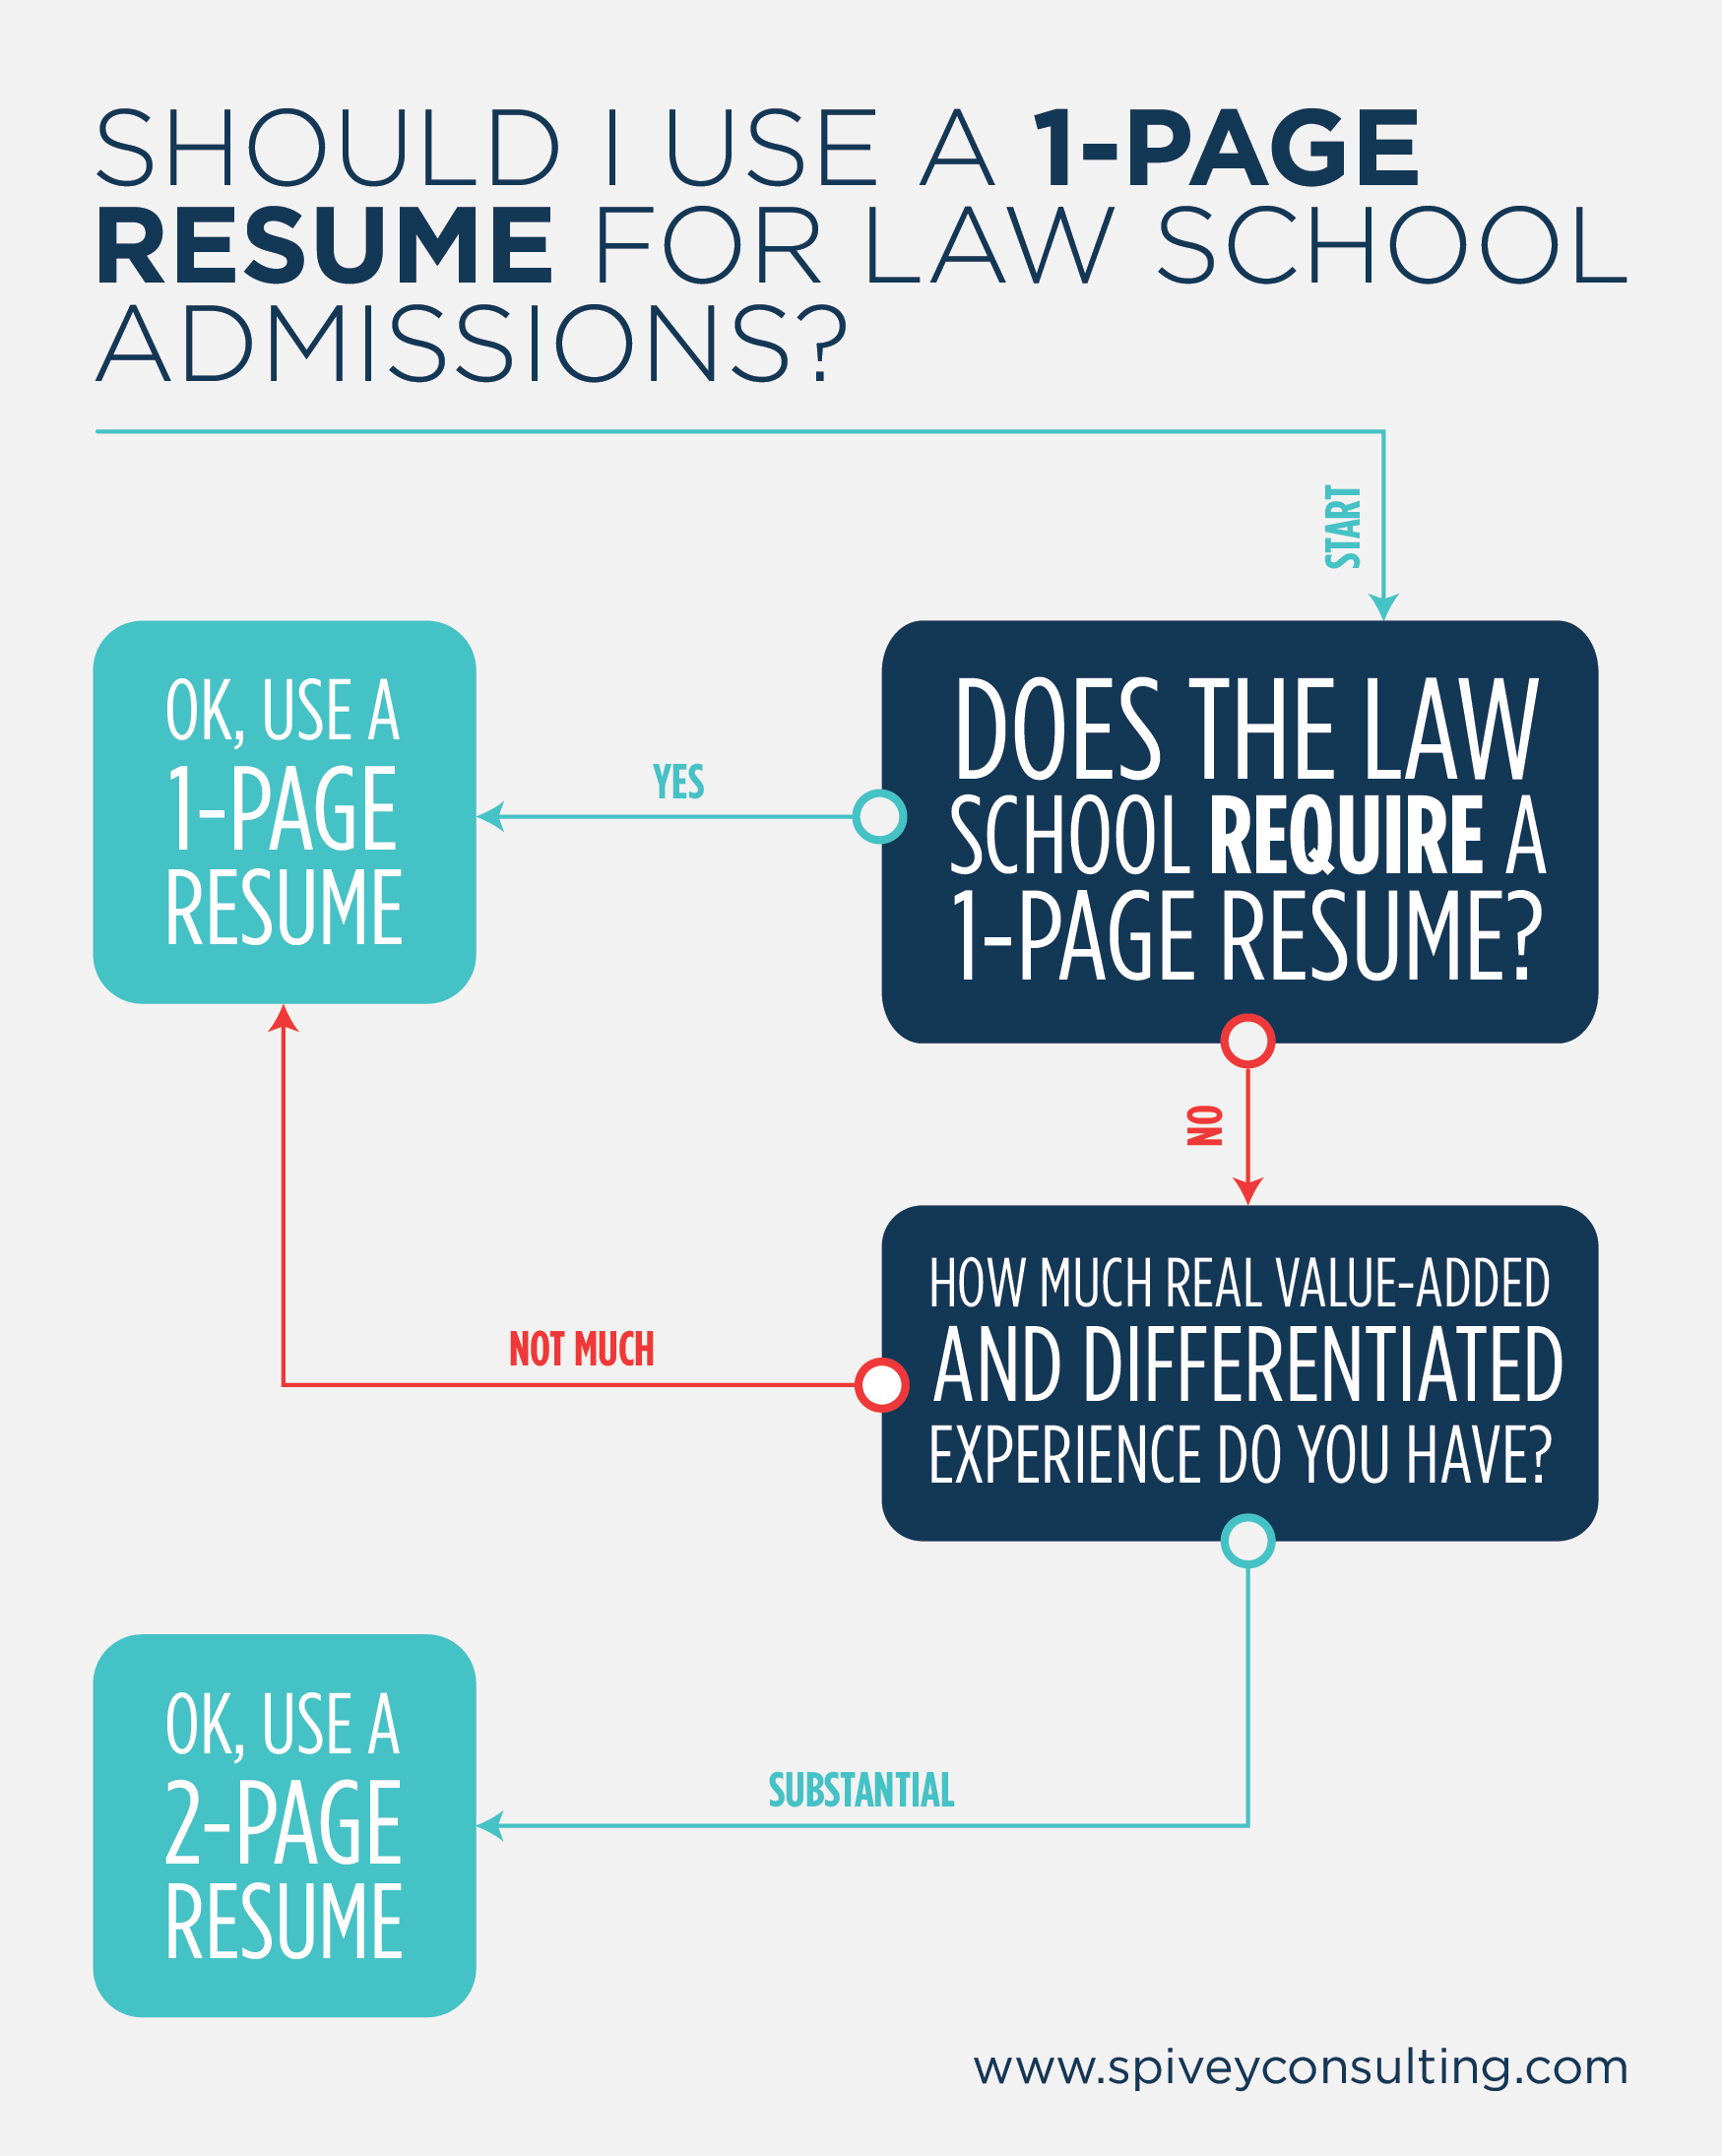 Debunking The 1-Page Law School Resume Myth